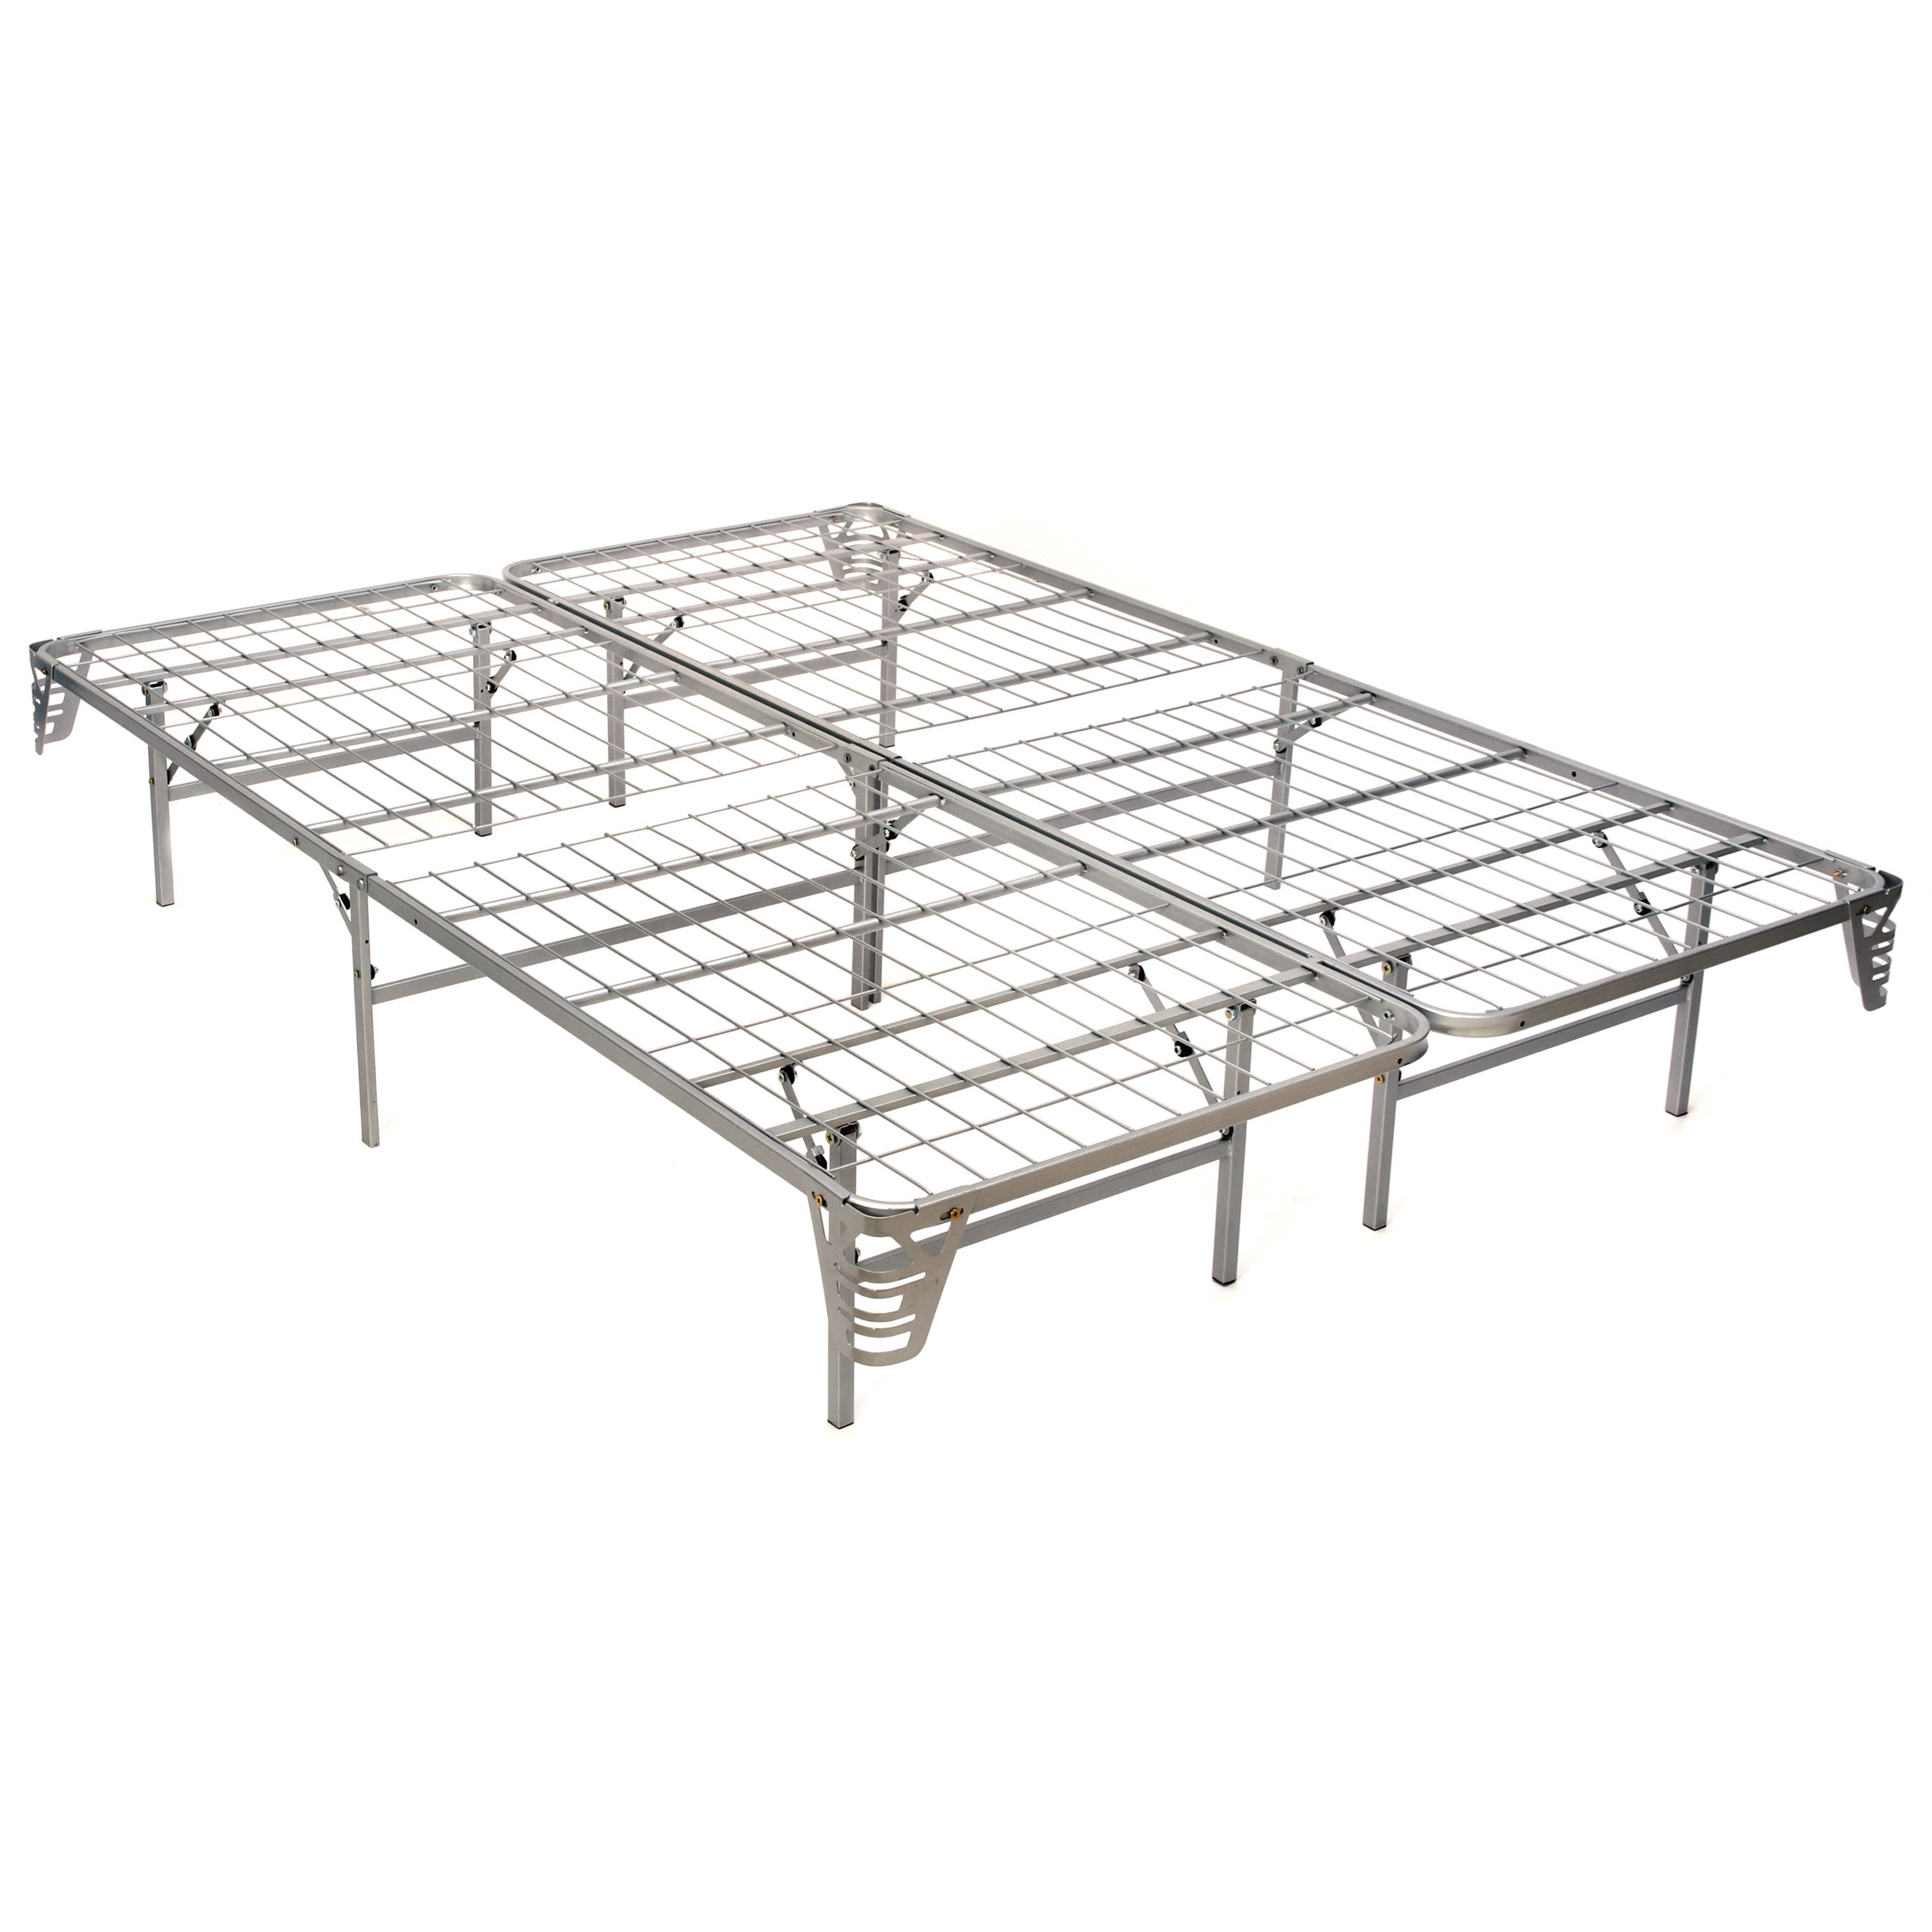 Glideaway Space Saver Bed Frame King Queen Space Saver Bed